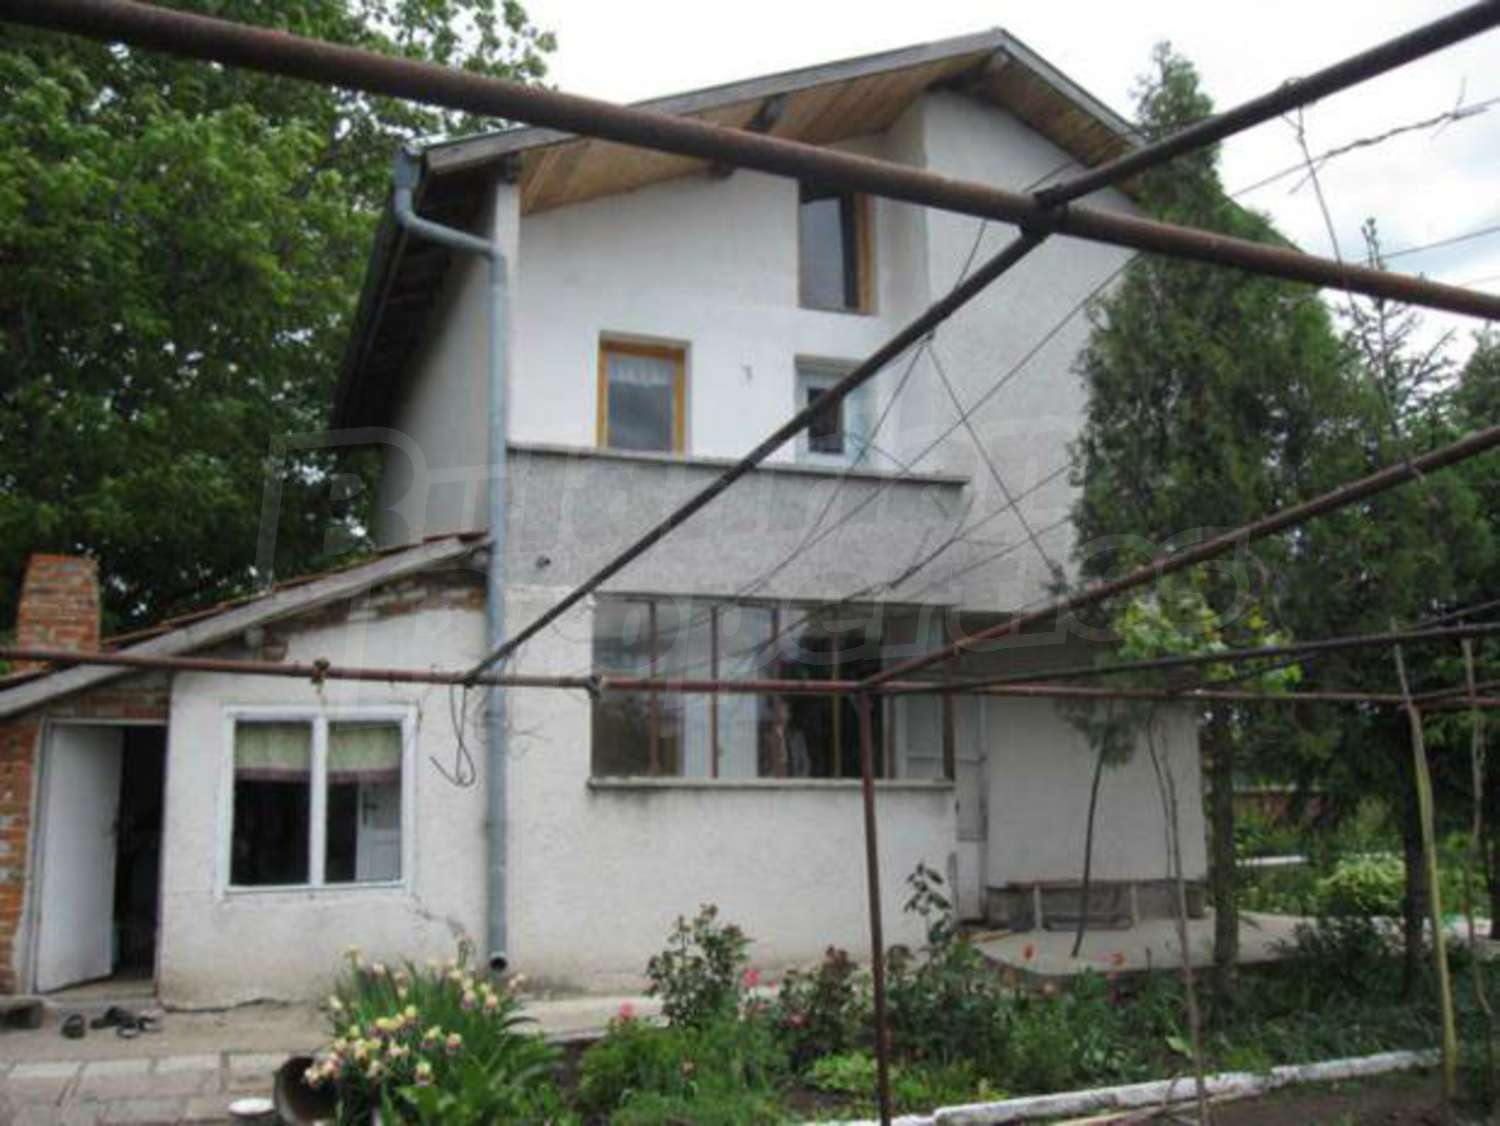 House for sale near burgas bulgaria cheap house with a for Big houses for cheap prices